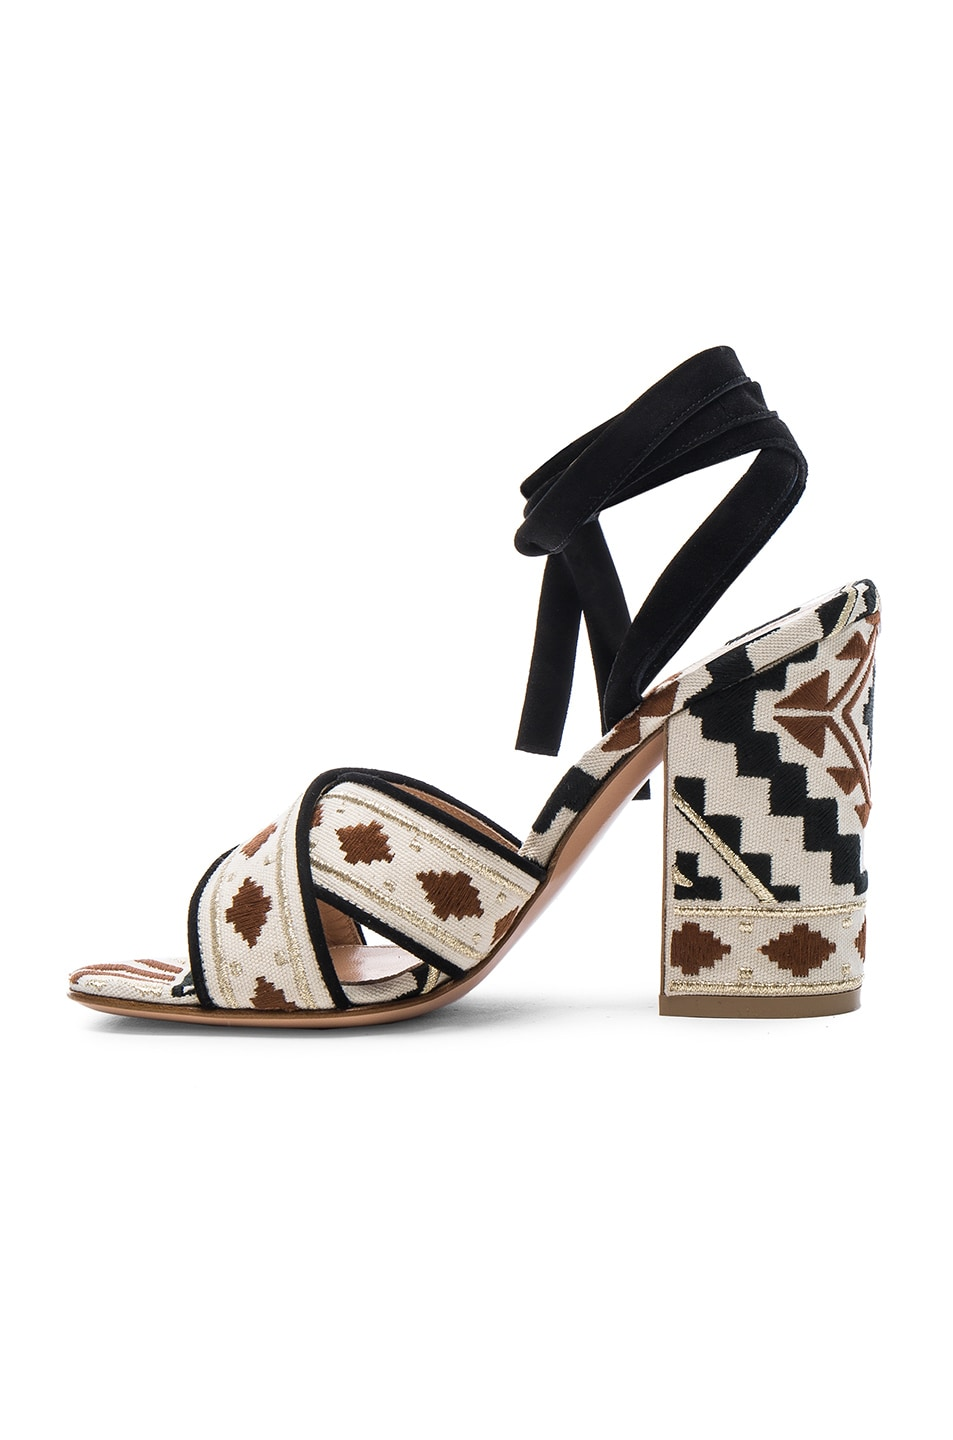 Image 5 of Gianvito Rossi Cheyenne Printed Heels in Black